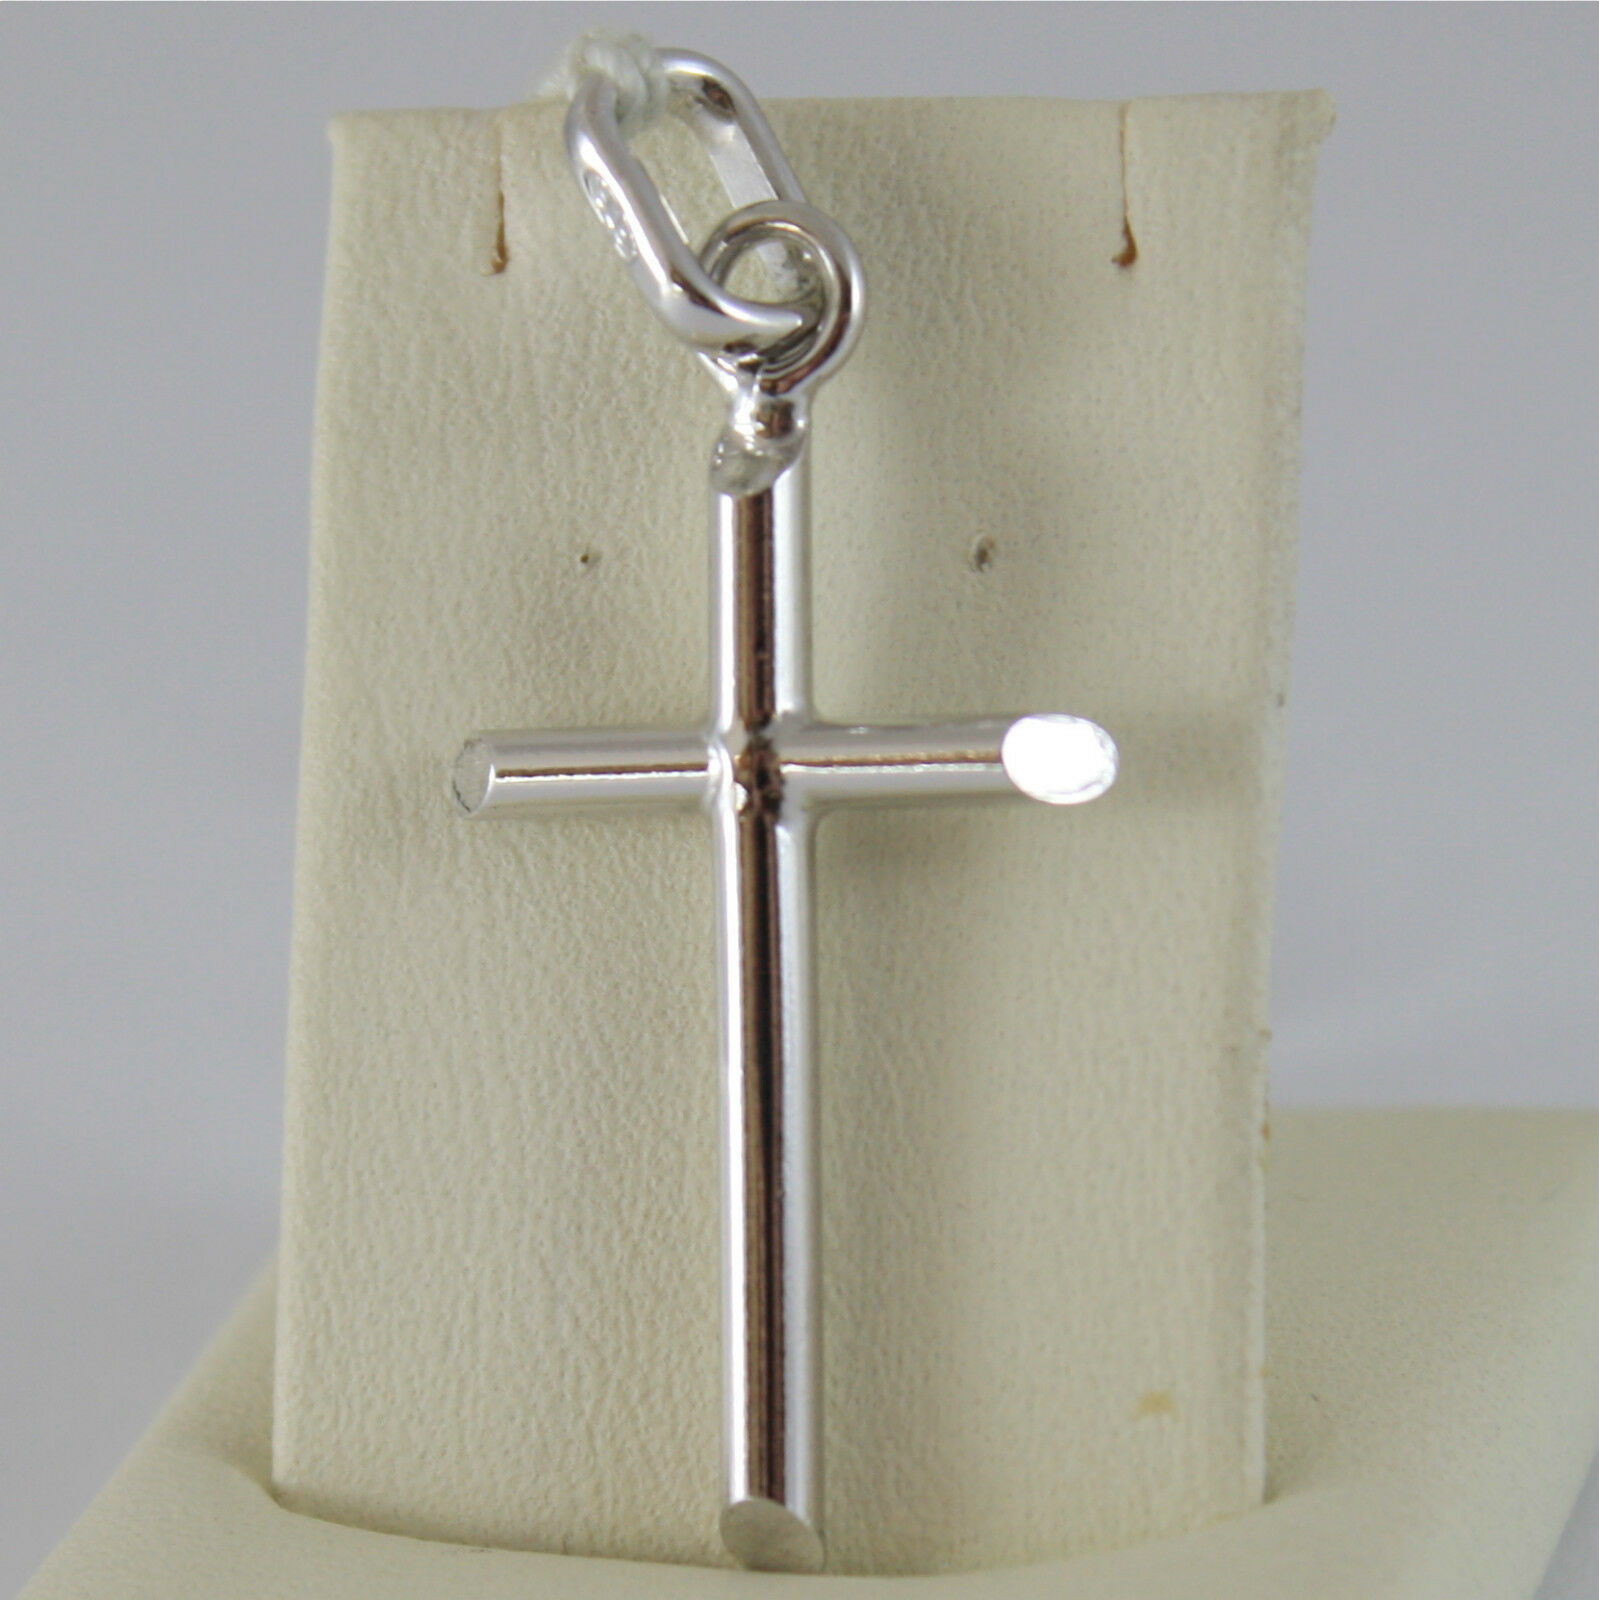 18K  WHITE GOLD CROSS, PENDANT, STYLIZED, TUBE, ROUNDED, MADE IN ITALY